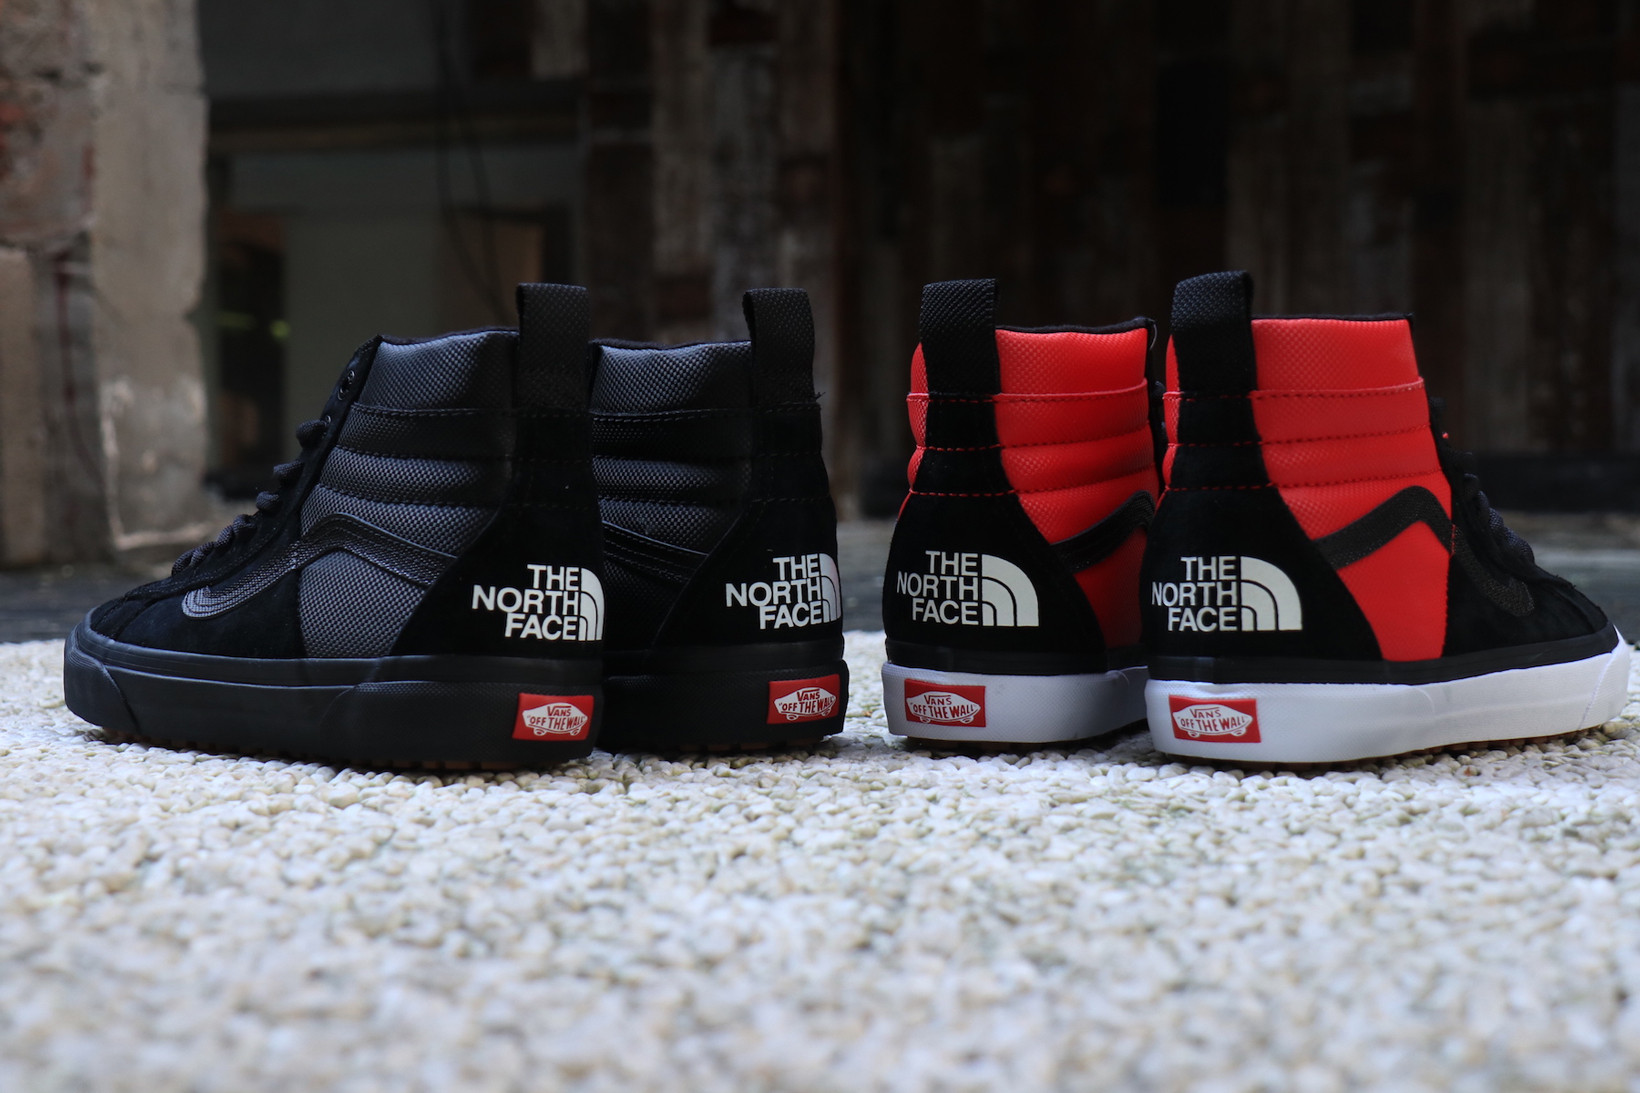 vans collab with north face